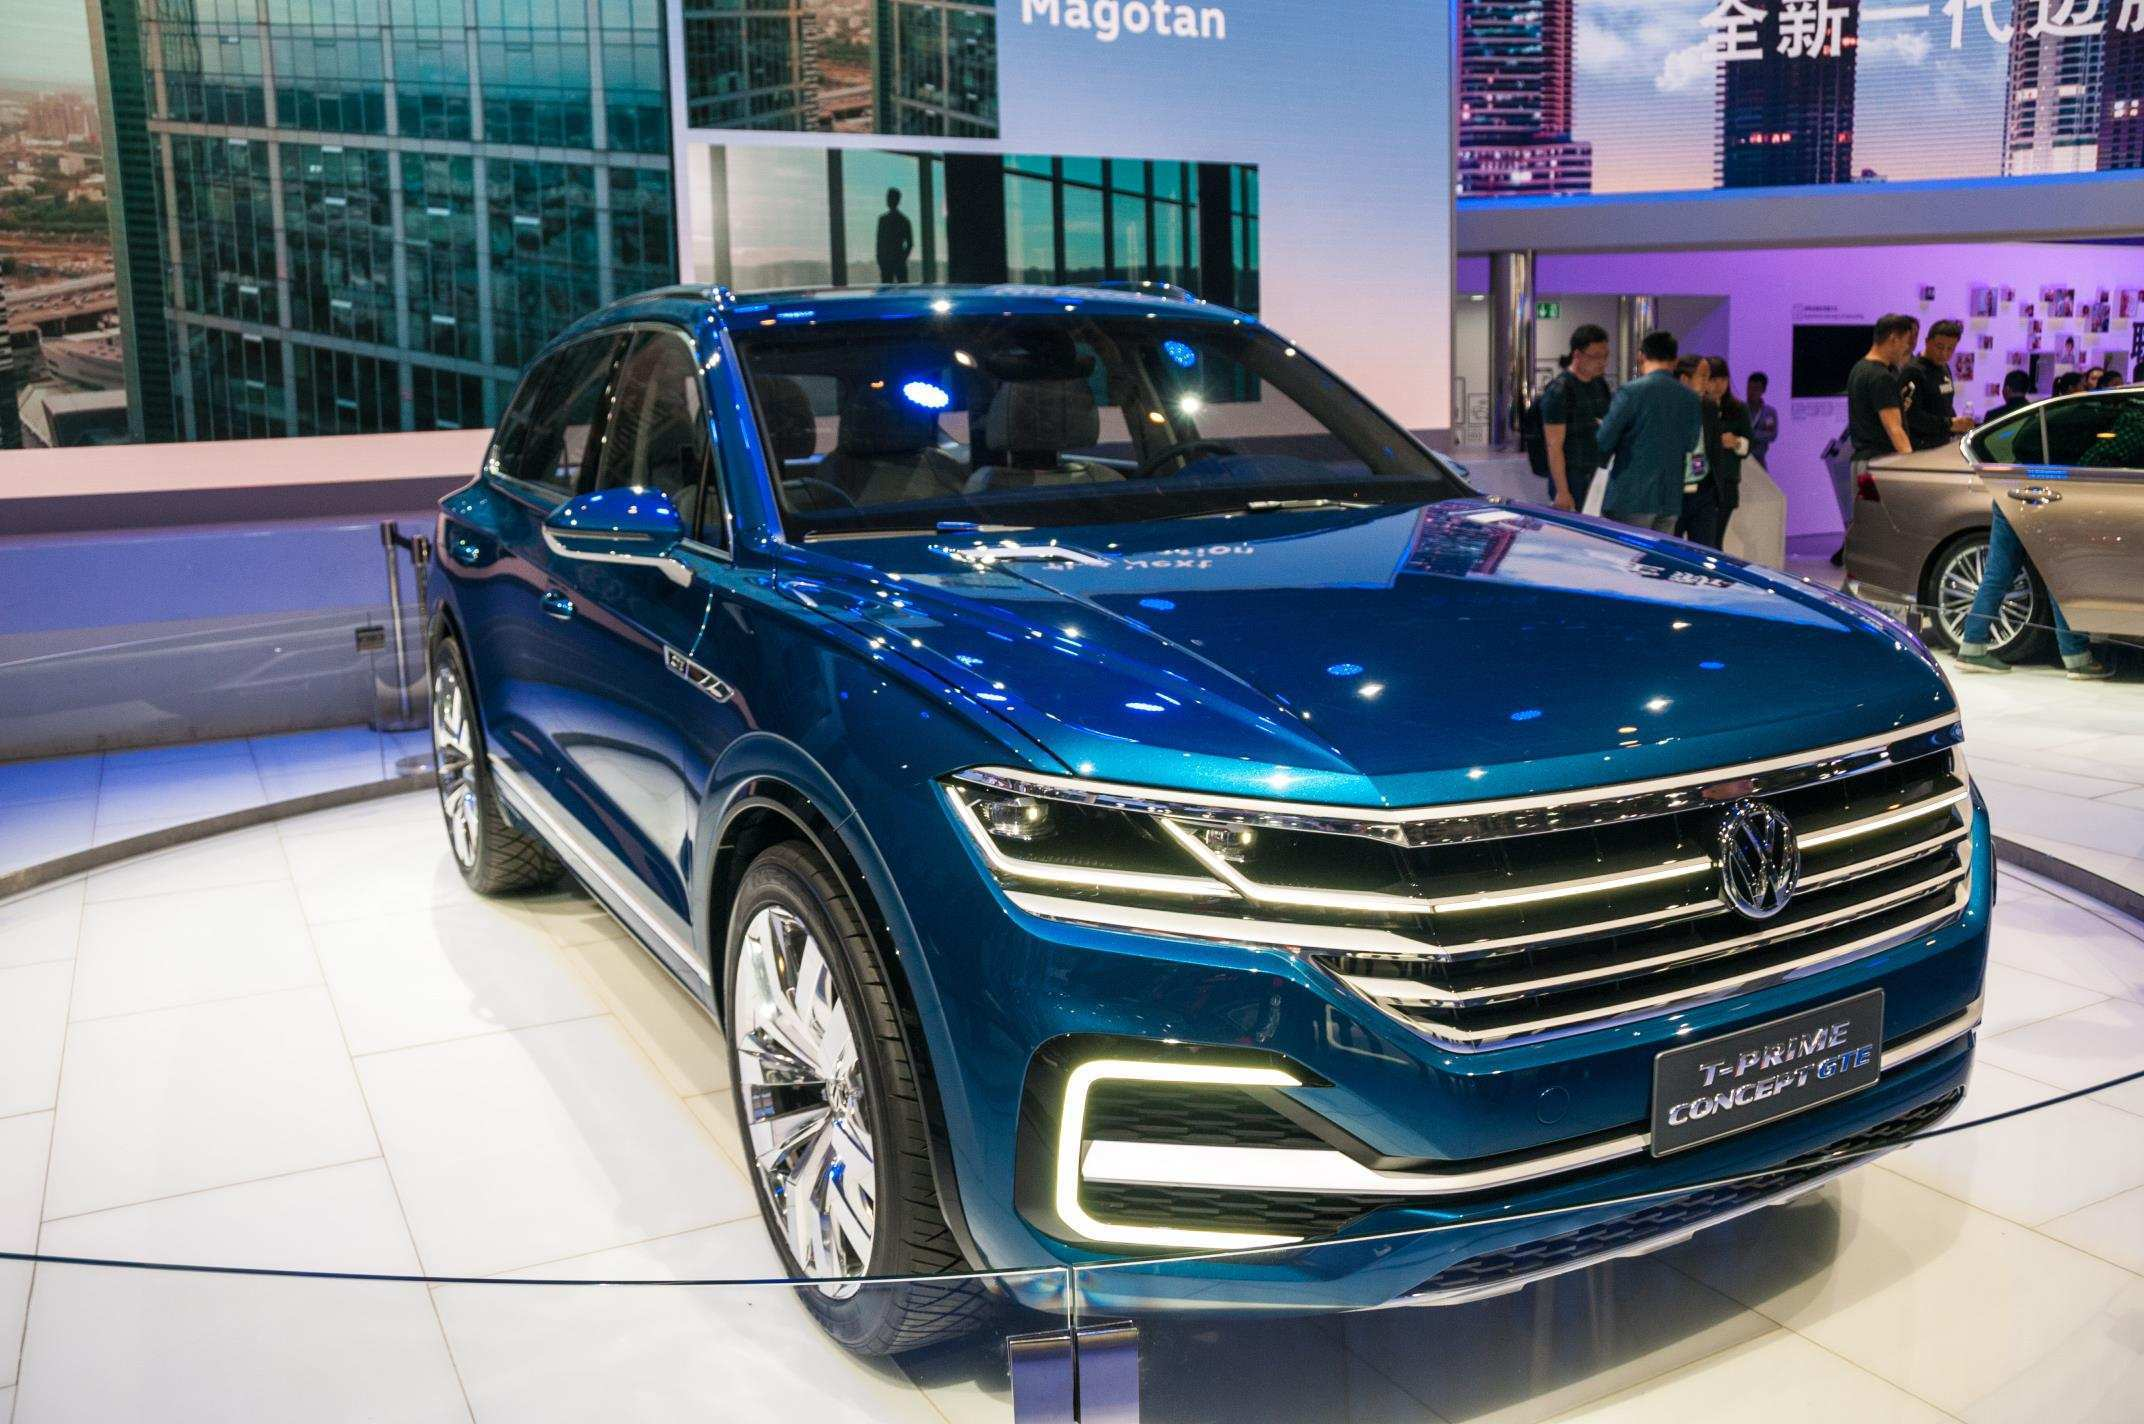 30 New Volkswagen 2020 Concept Spesification for Volkswagen 2020 Concept